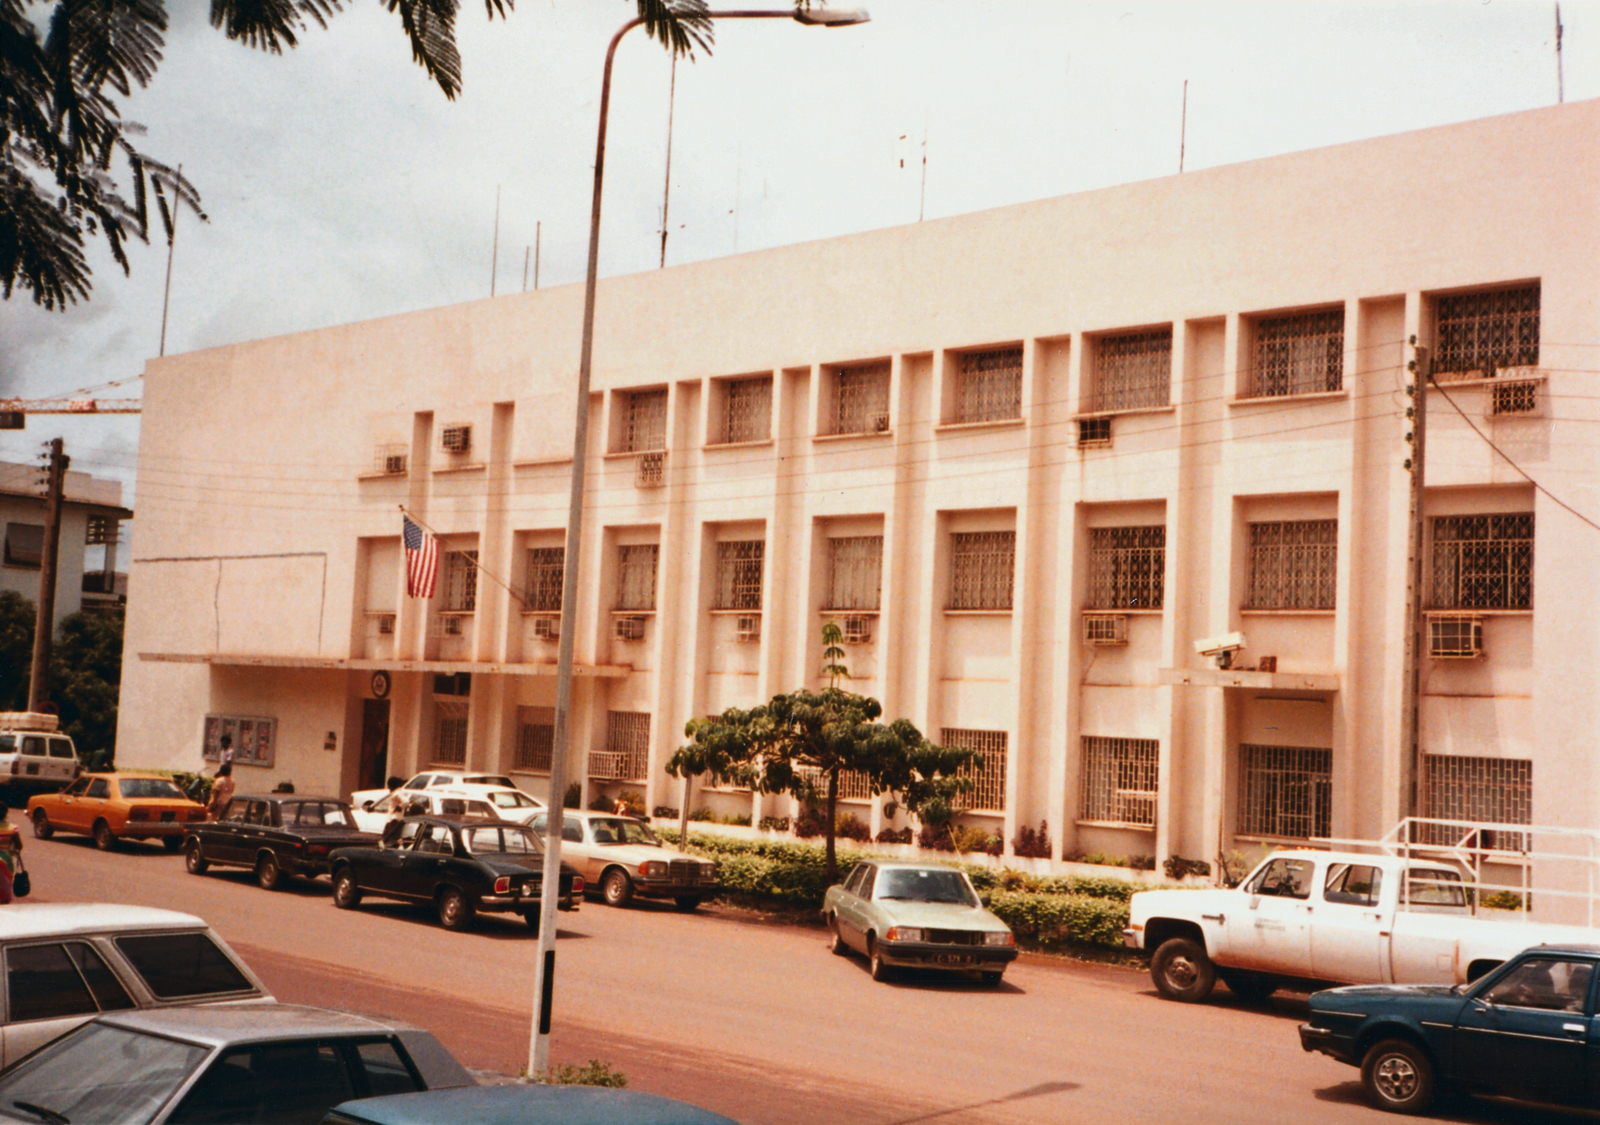 Yaounde - Chancery Office Building - 1990